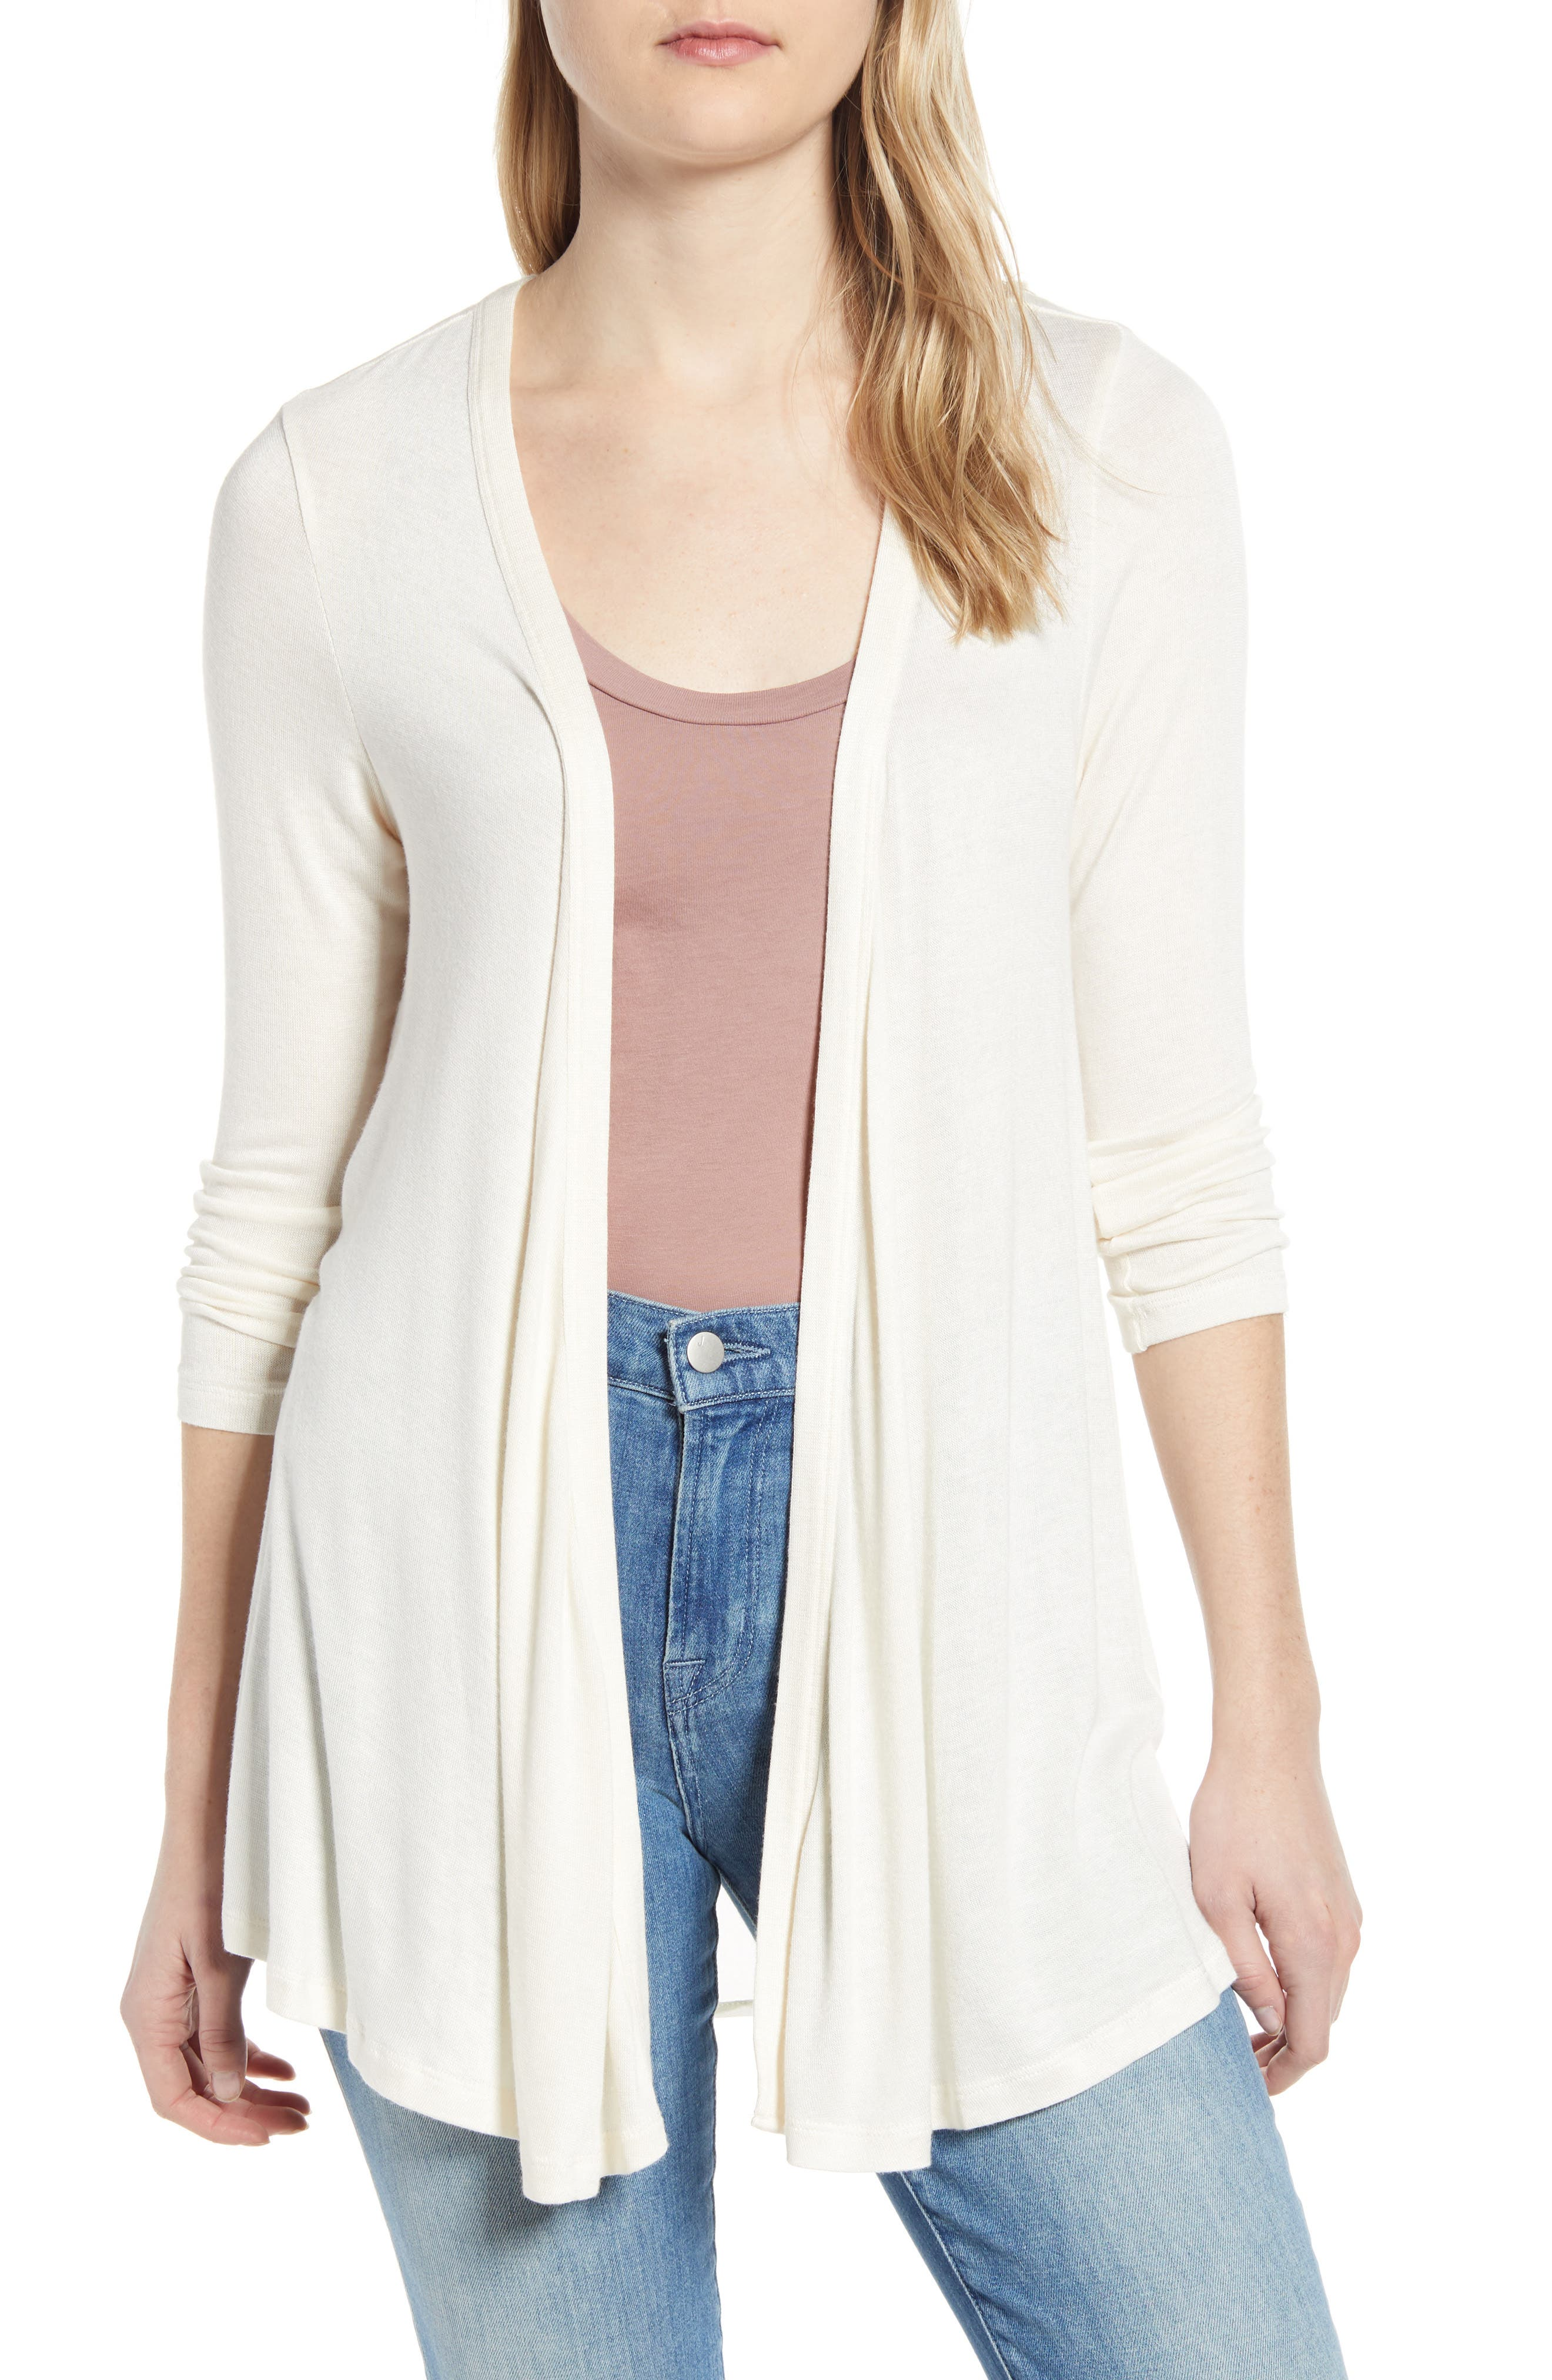 A knit cardigan with a beautifully draped open front features an airy chiffon inset at the back, making it a lightweight, swingy and modern layering piece. Style Name: Bobeau Mixed Media Cardigan. Style Number: 6049018. Available in stores.